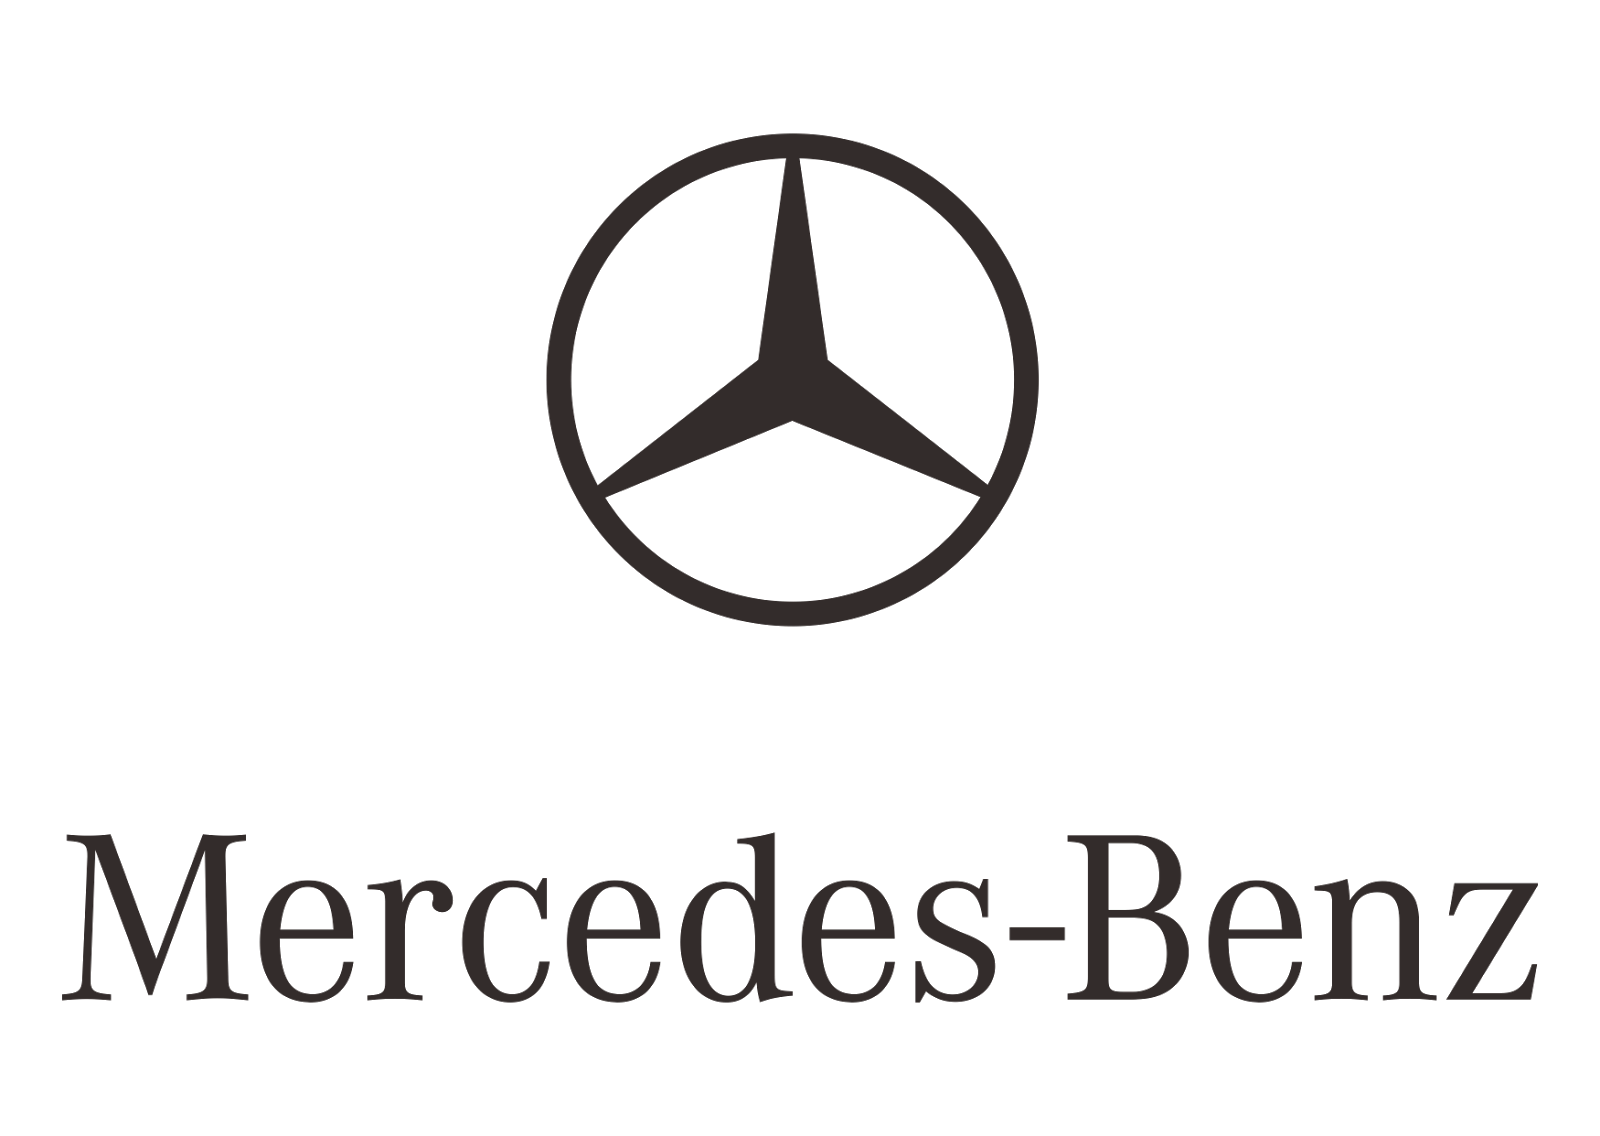 Mercedes Benz (Design ...